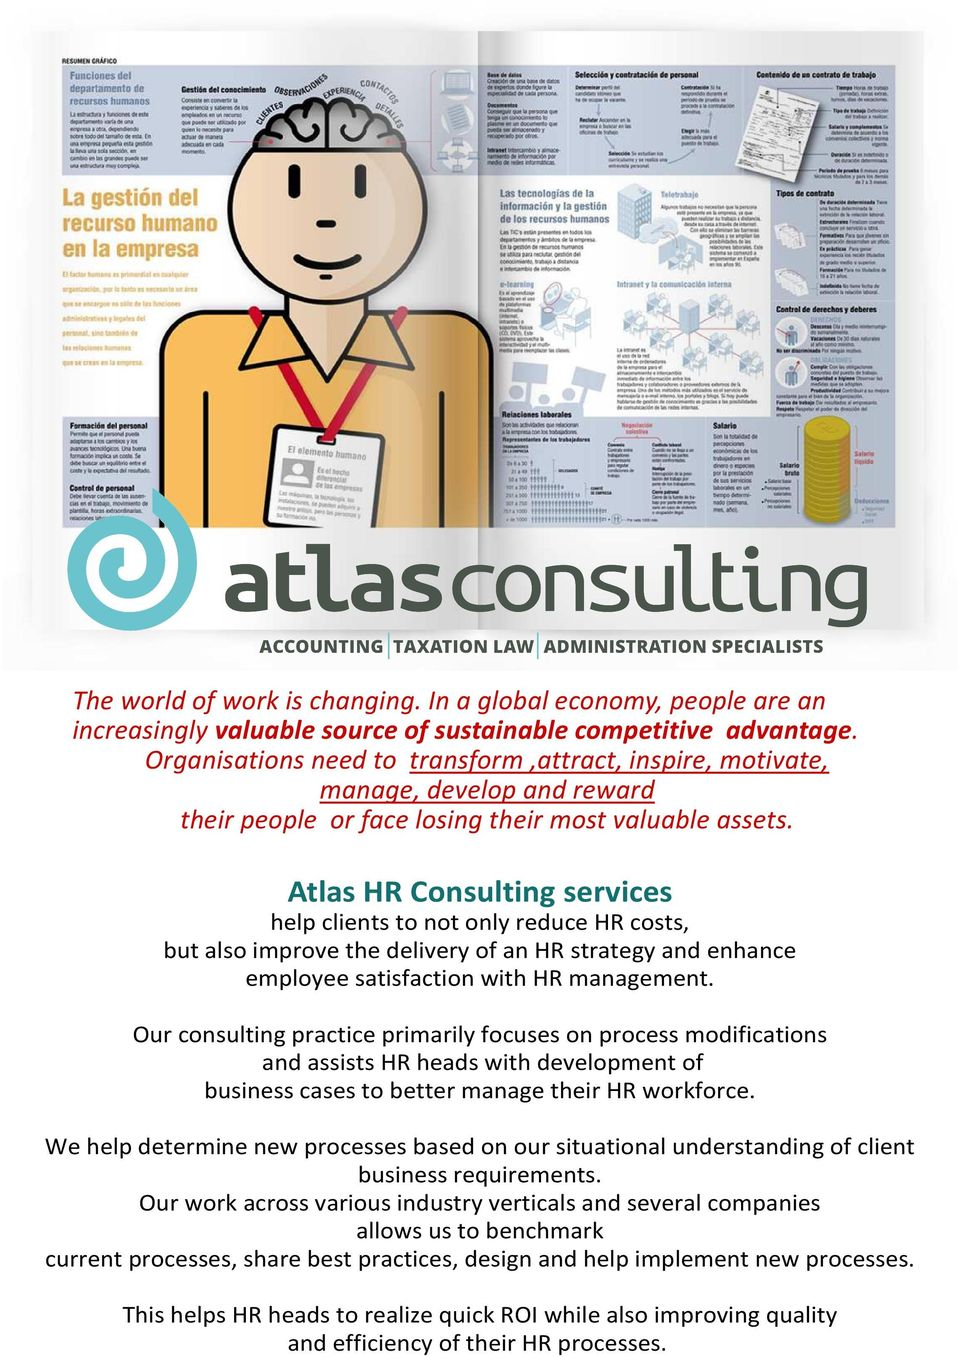 Atlas HR Consulting services help clients to not only reduce HR costs, but also improve the delivery of an HR strategy and enhance employee satisfaction with HR management.